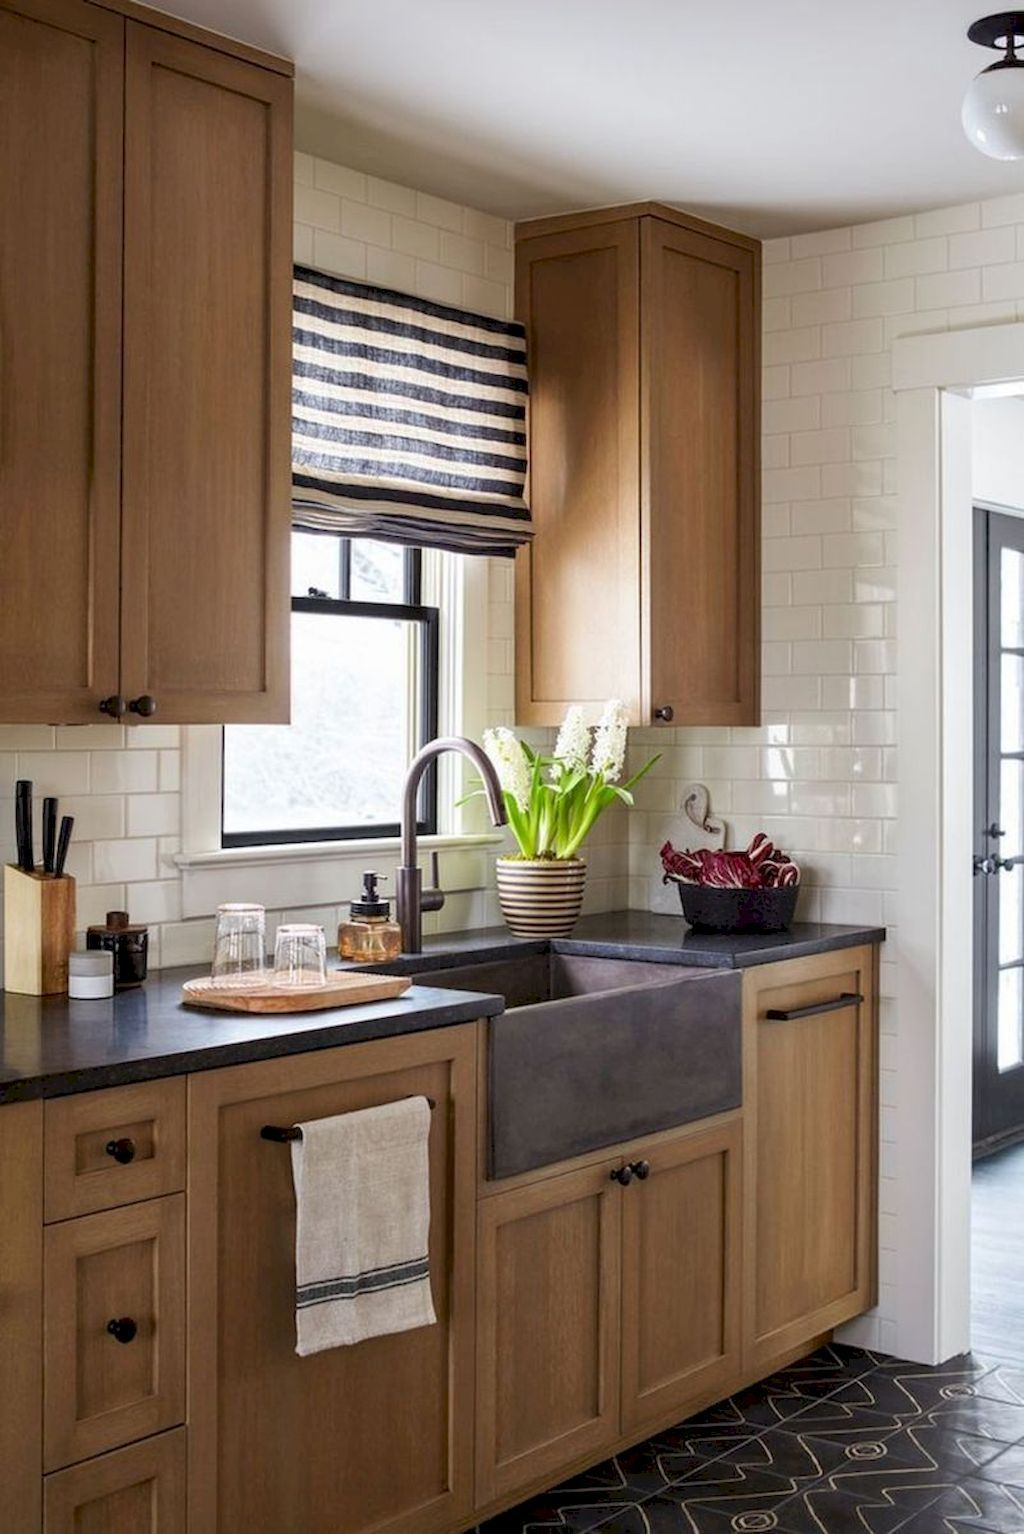 Affordable Kitchen Cabinet Design Ideas That Make Your Kitchen Looks Neat27